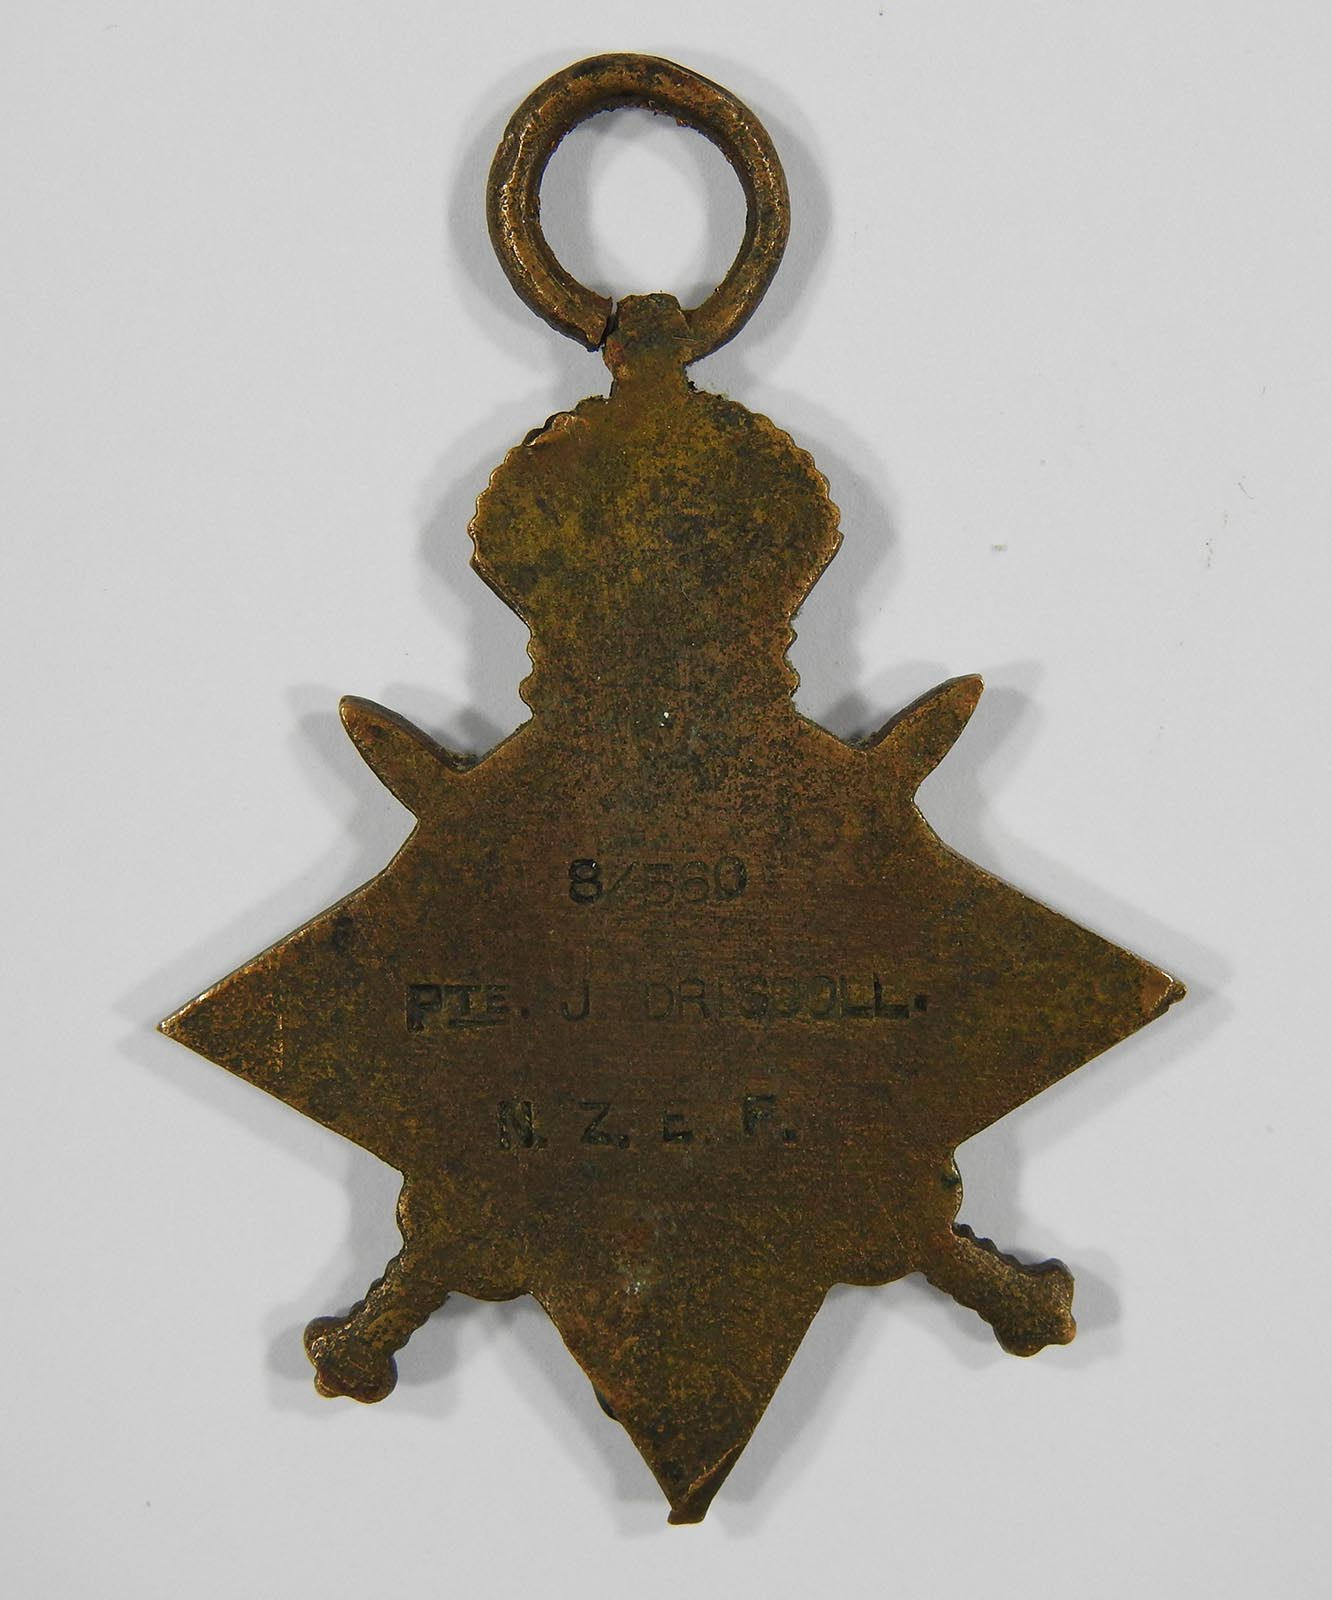 Verso, 1914-1915 Star, awarded to James Driscoll